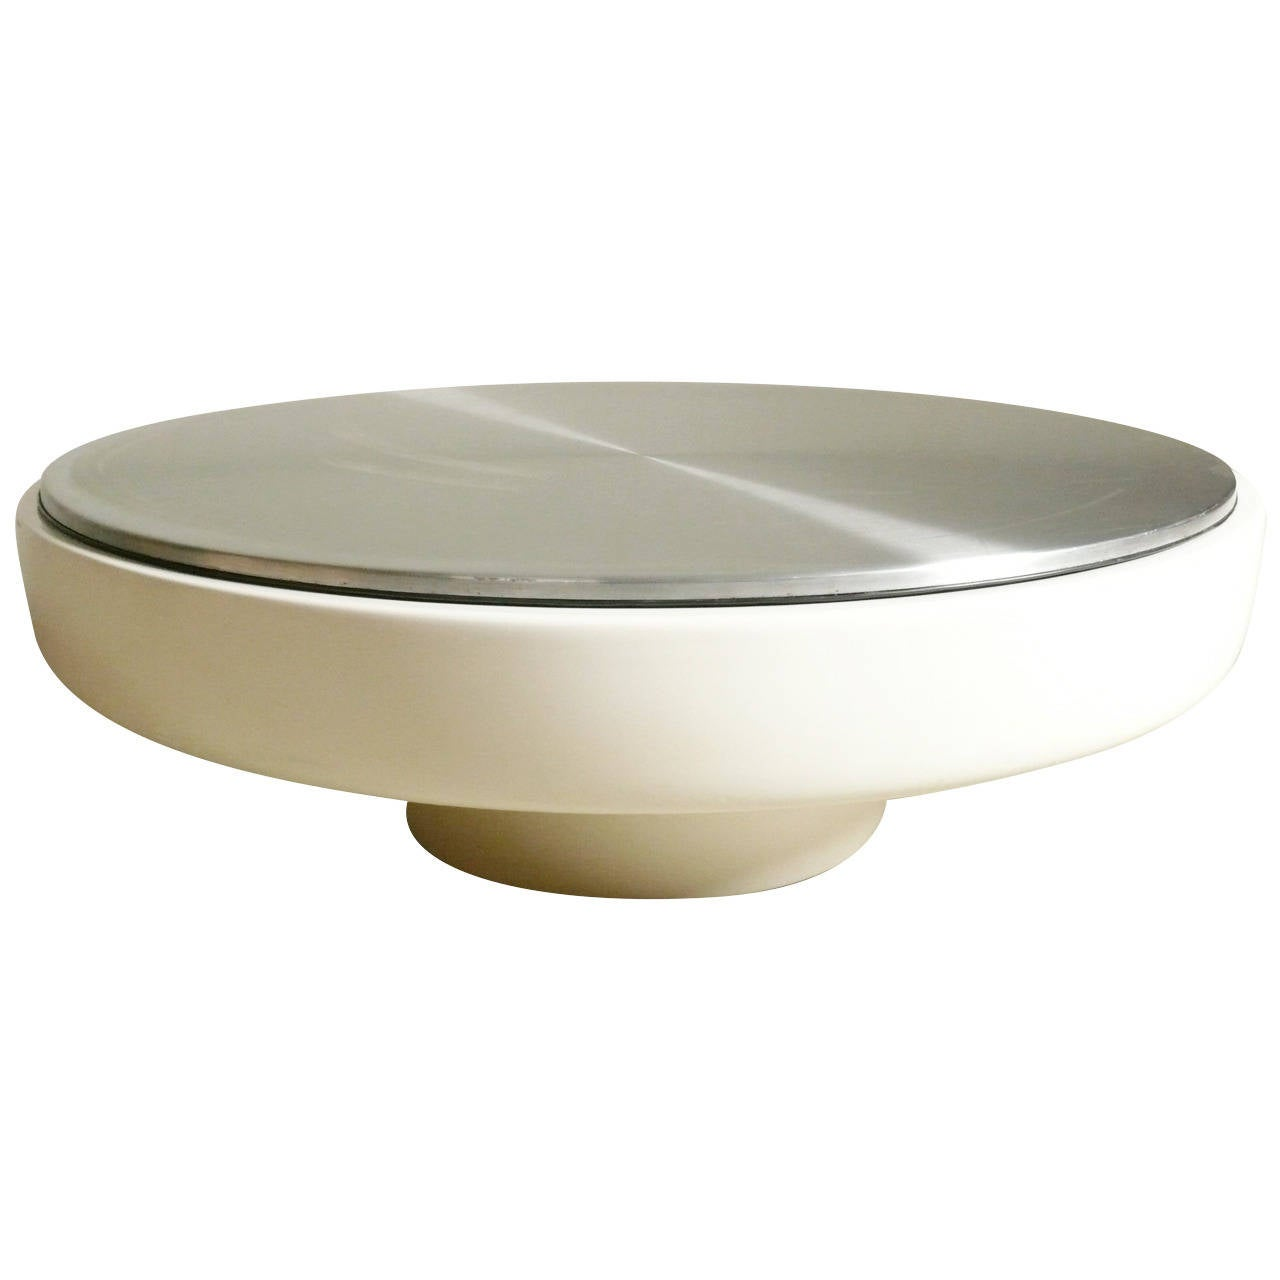 1970s Fiberglass And Stainless Steel Coffee Table At 1stdibs